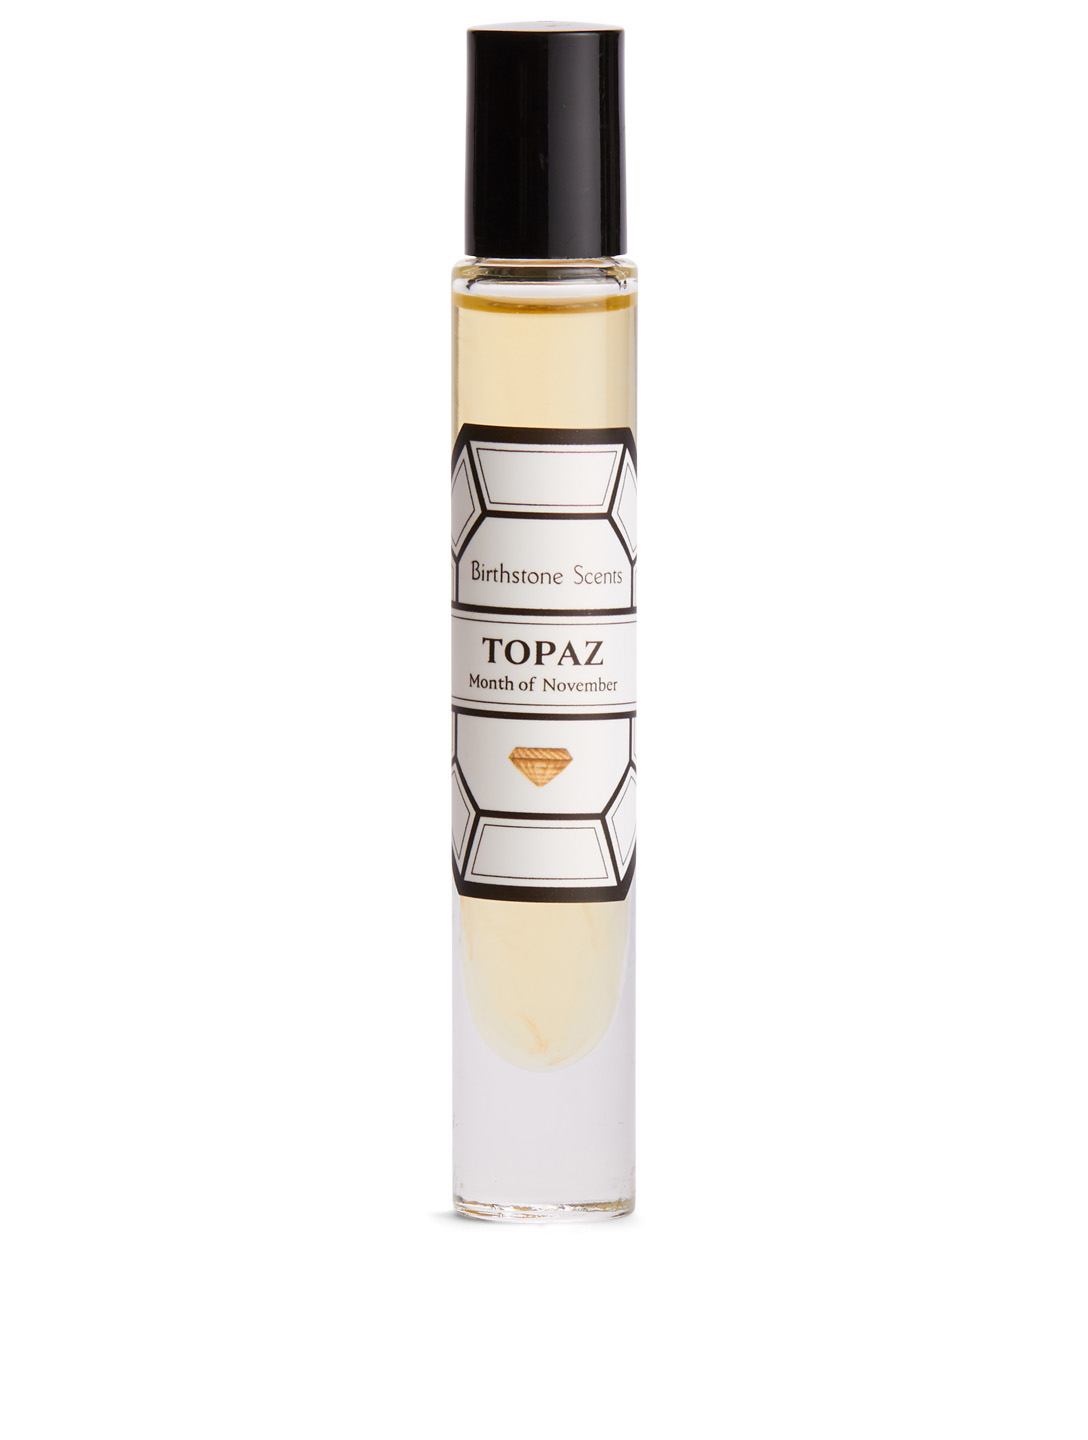 BIRTHSTONE SCENTS Topaz Roll-On Perfume Oil H Project